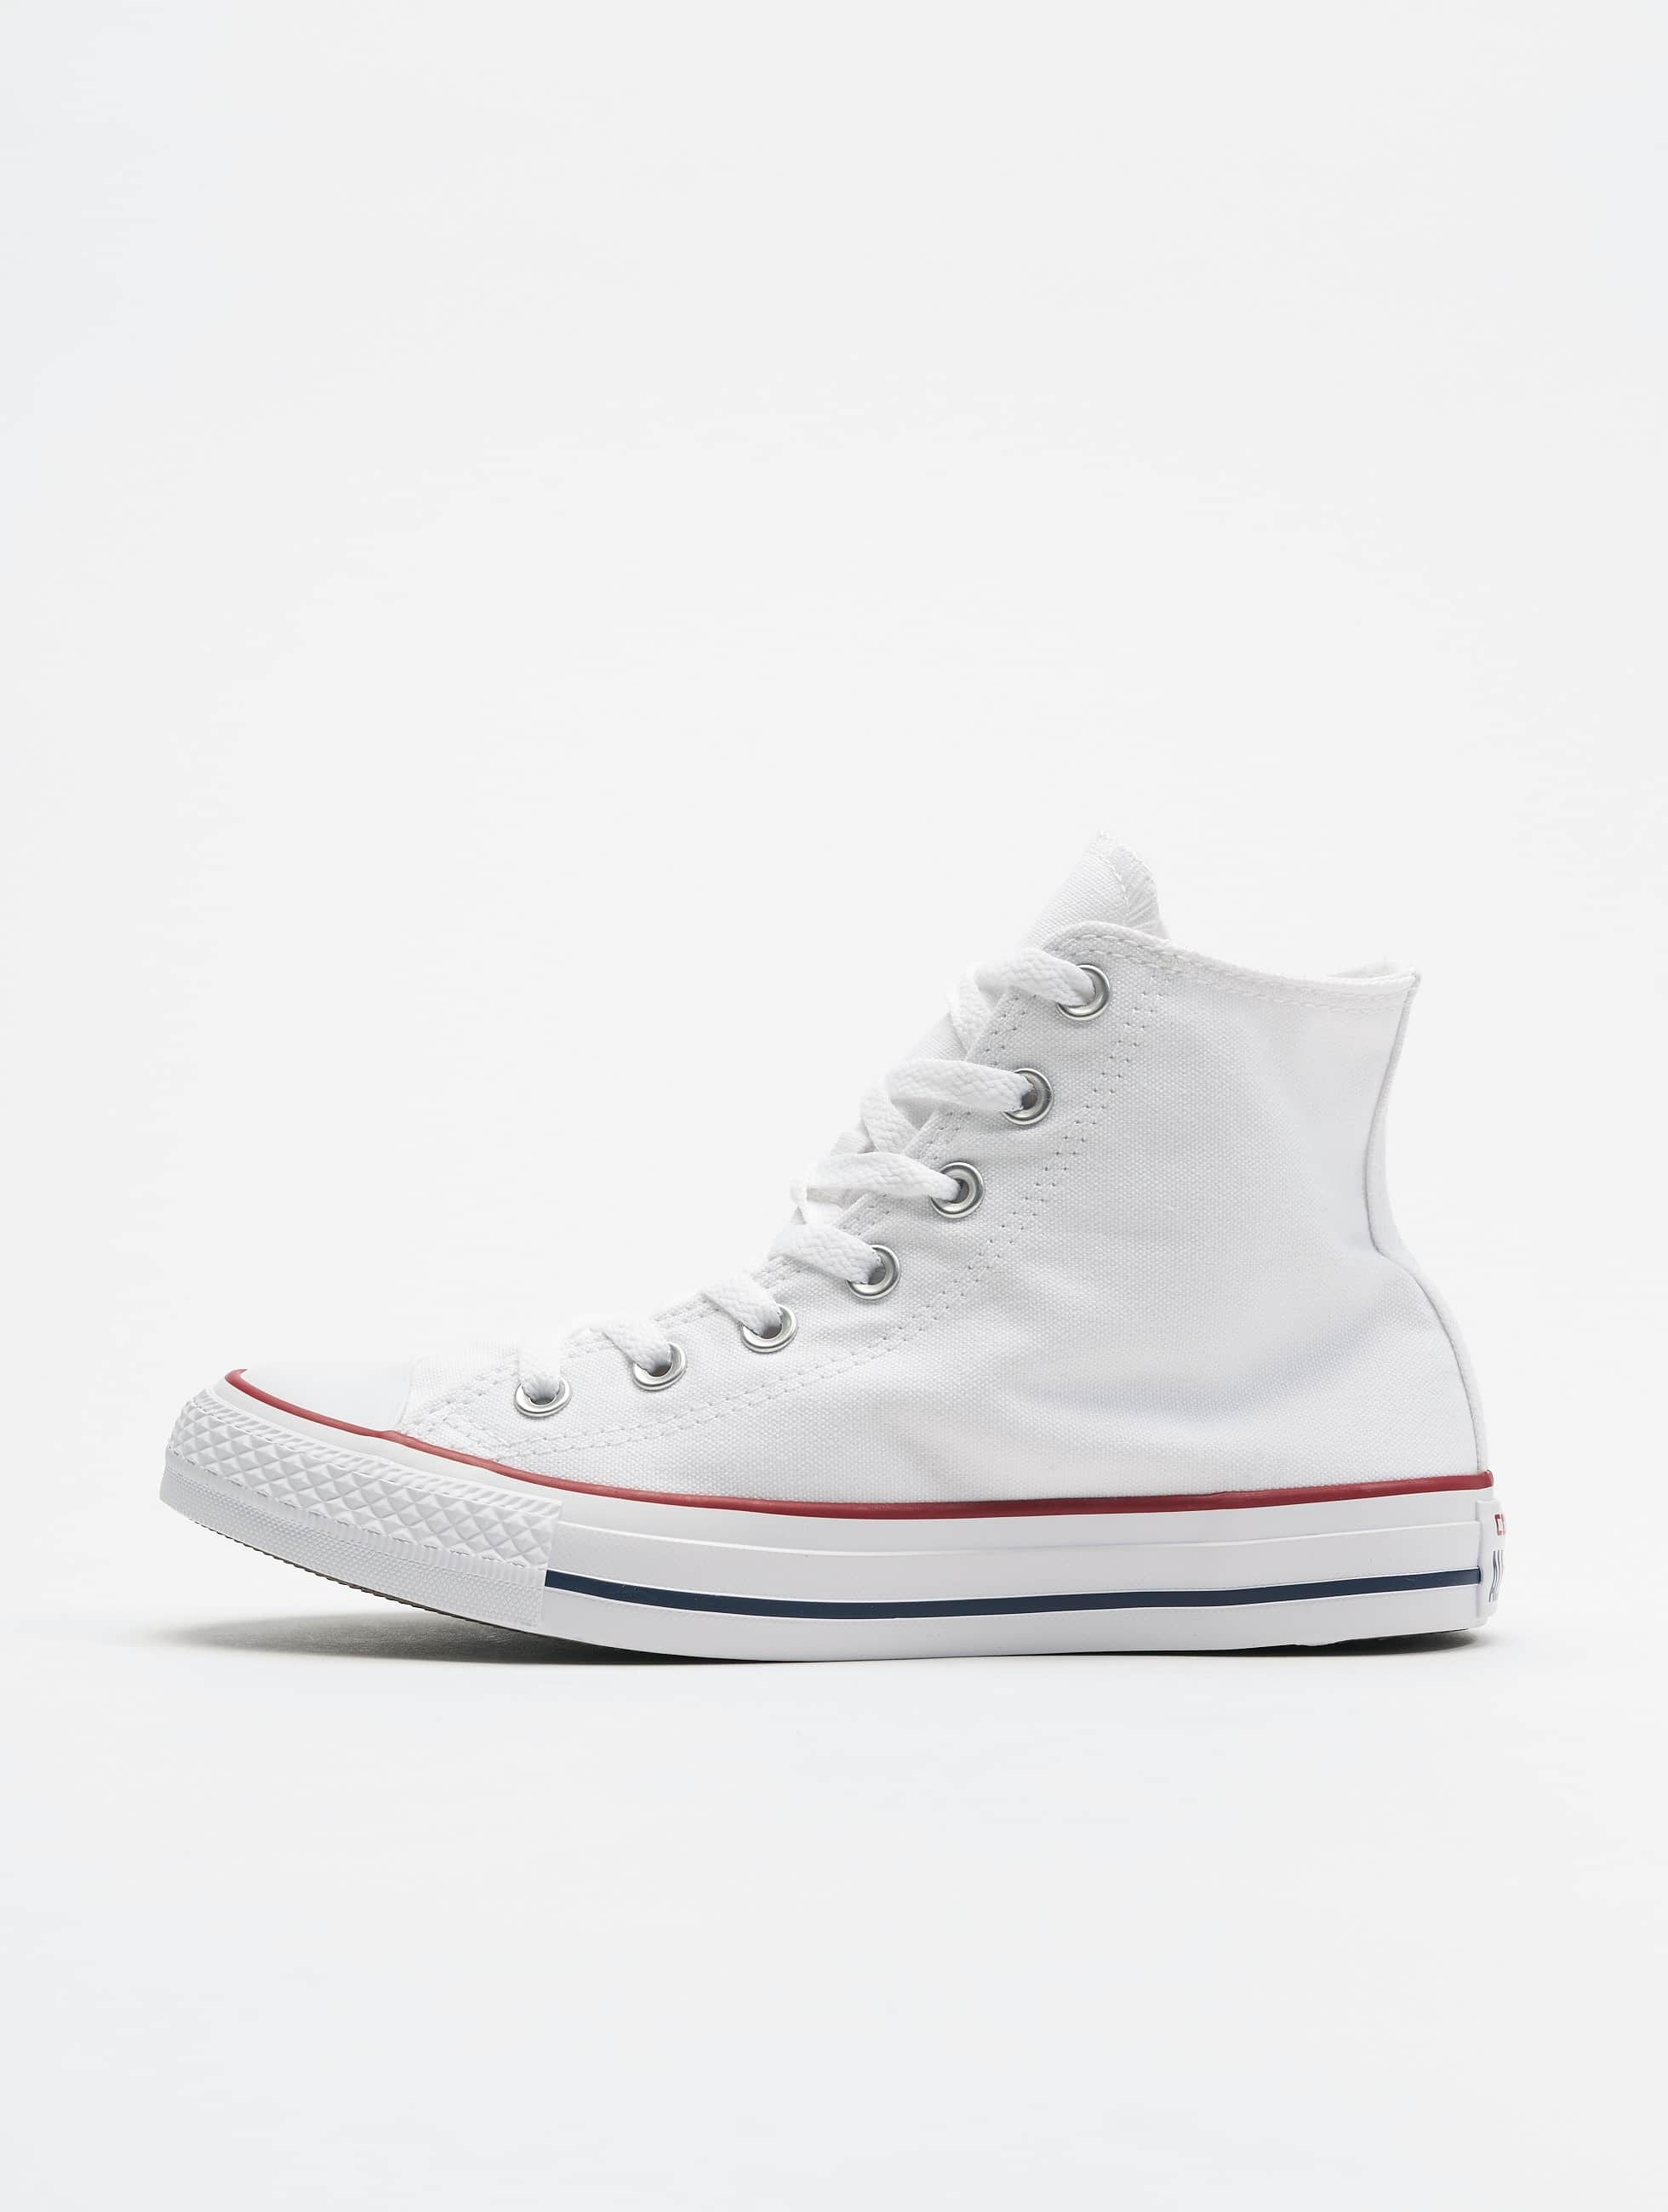 370f856e3 ... coupon code for converse zapatillas de deporte chuck taylor all star  blanco 54bb7 30ac0